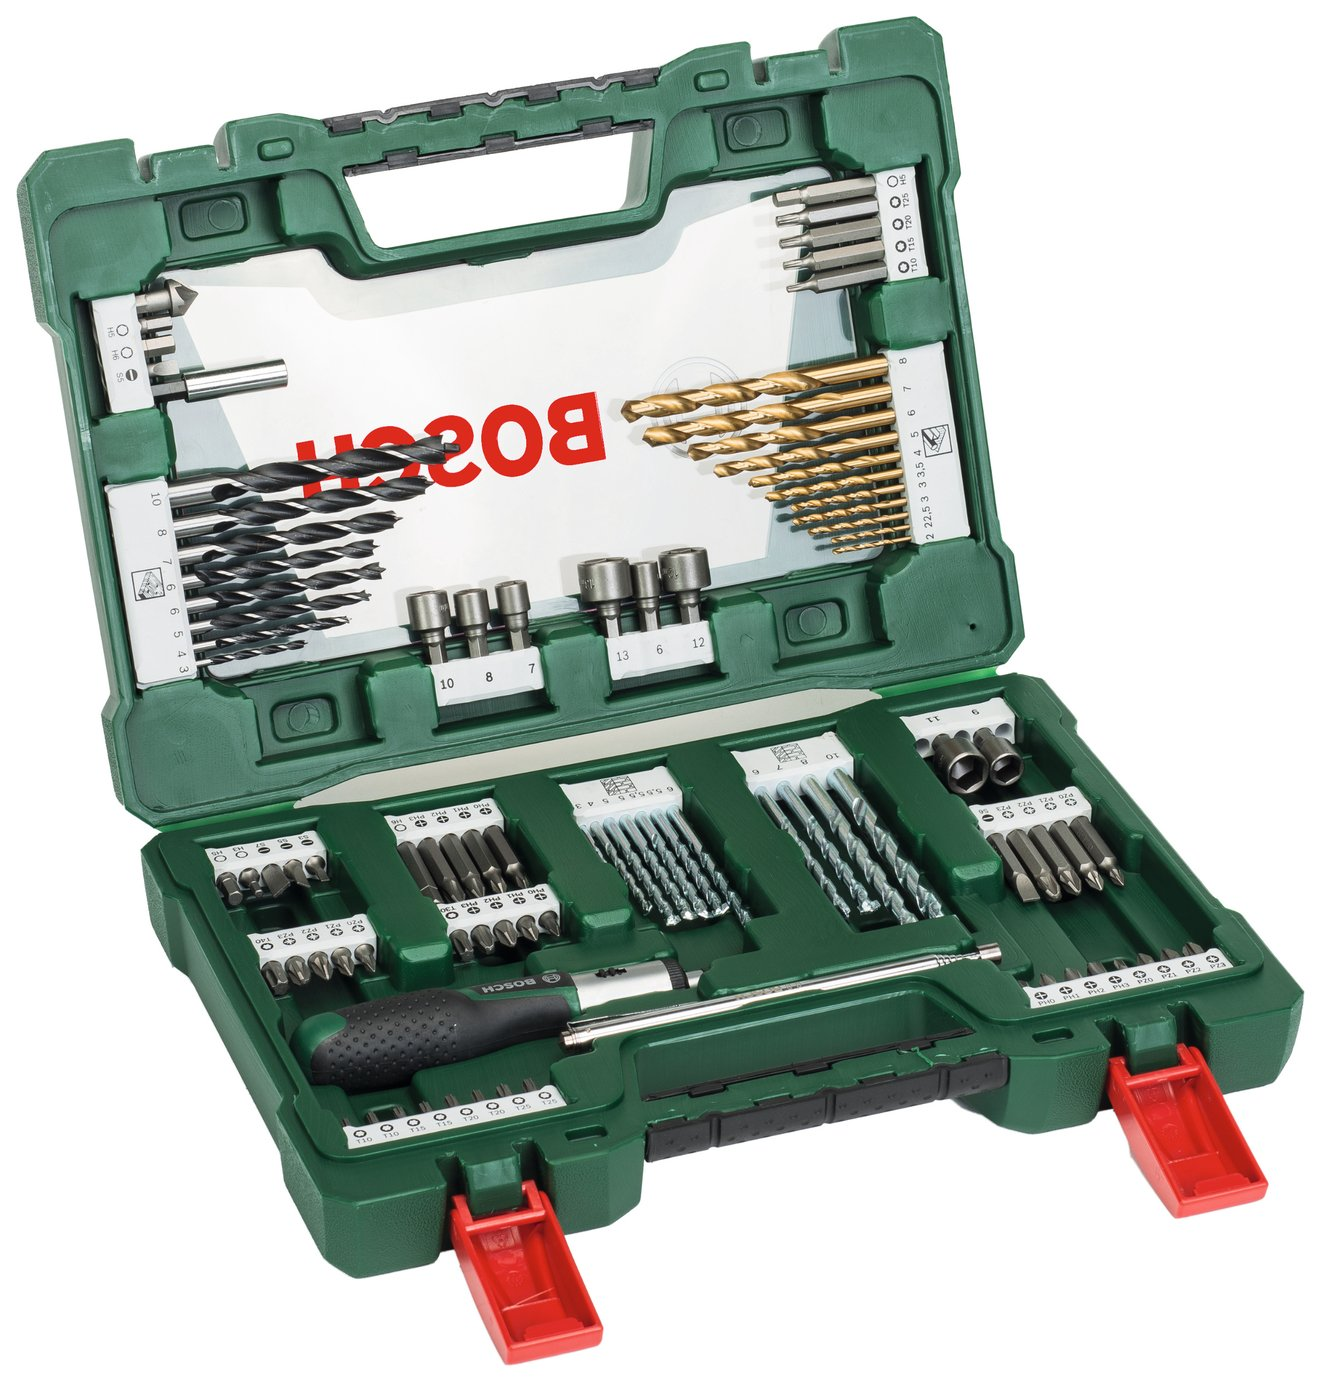 Image of Bosch 91 Piece V-Line Drill & Screwdriver Bit Set